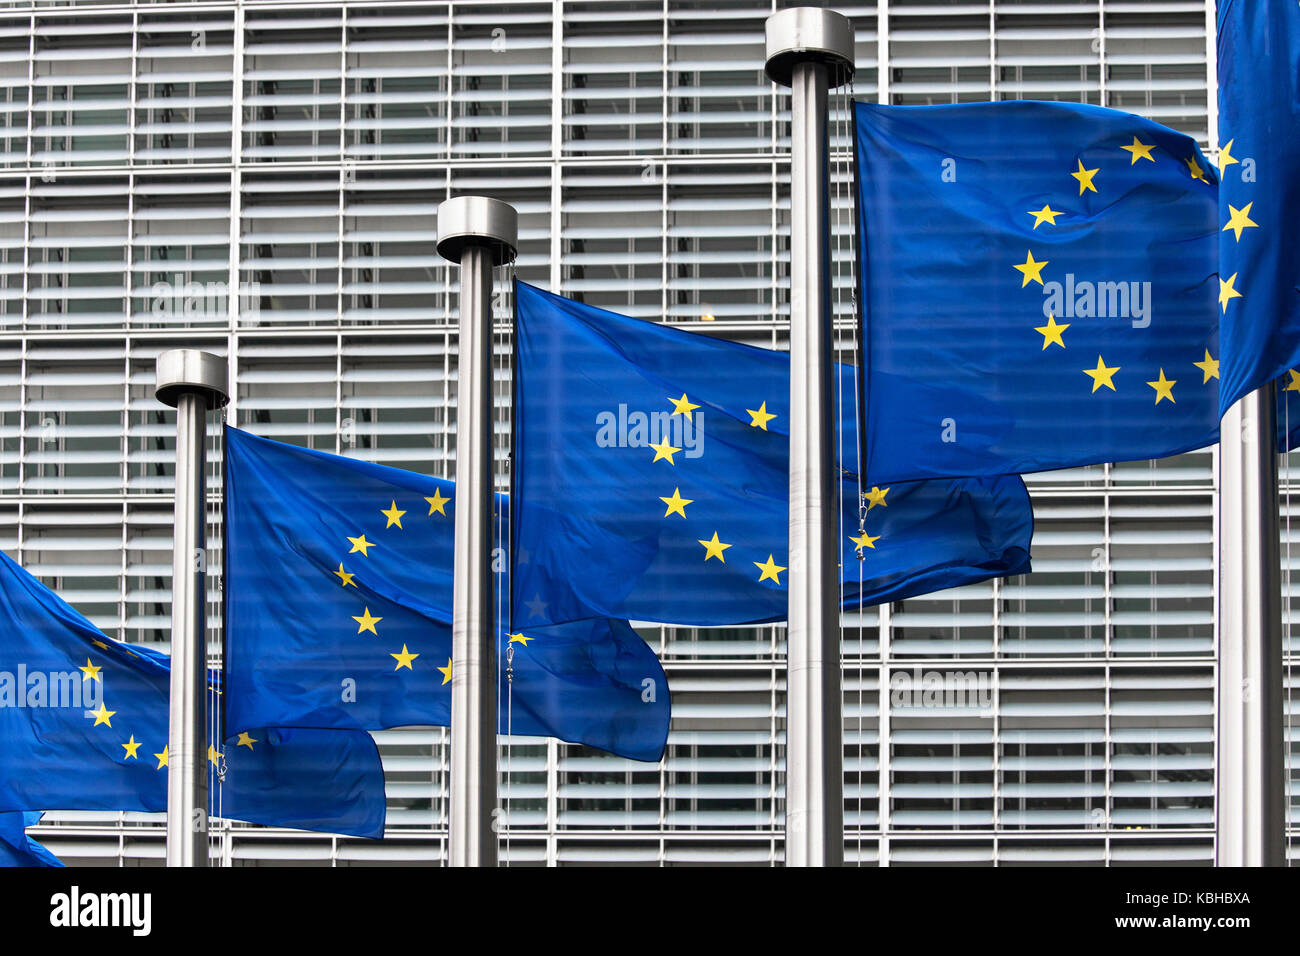 Flags of the European Union in front of the Berlaymont building in Brussels, Belgium. - Stock Image